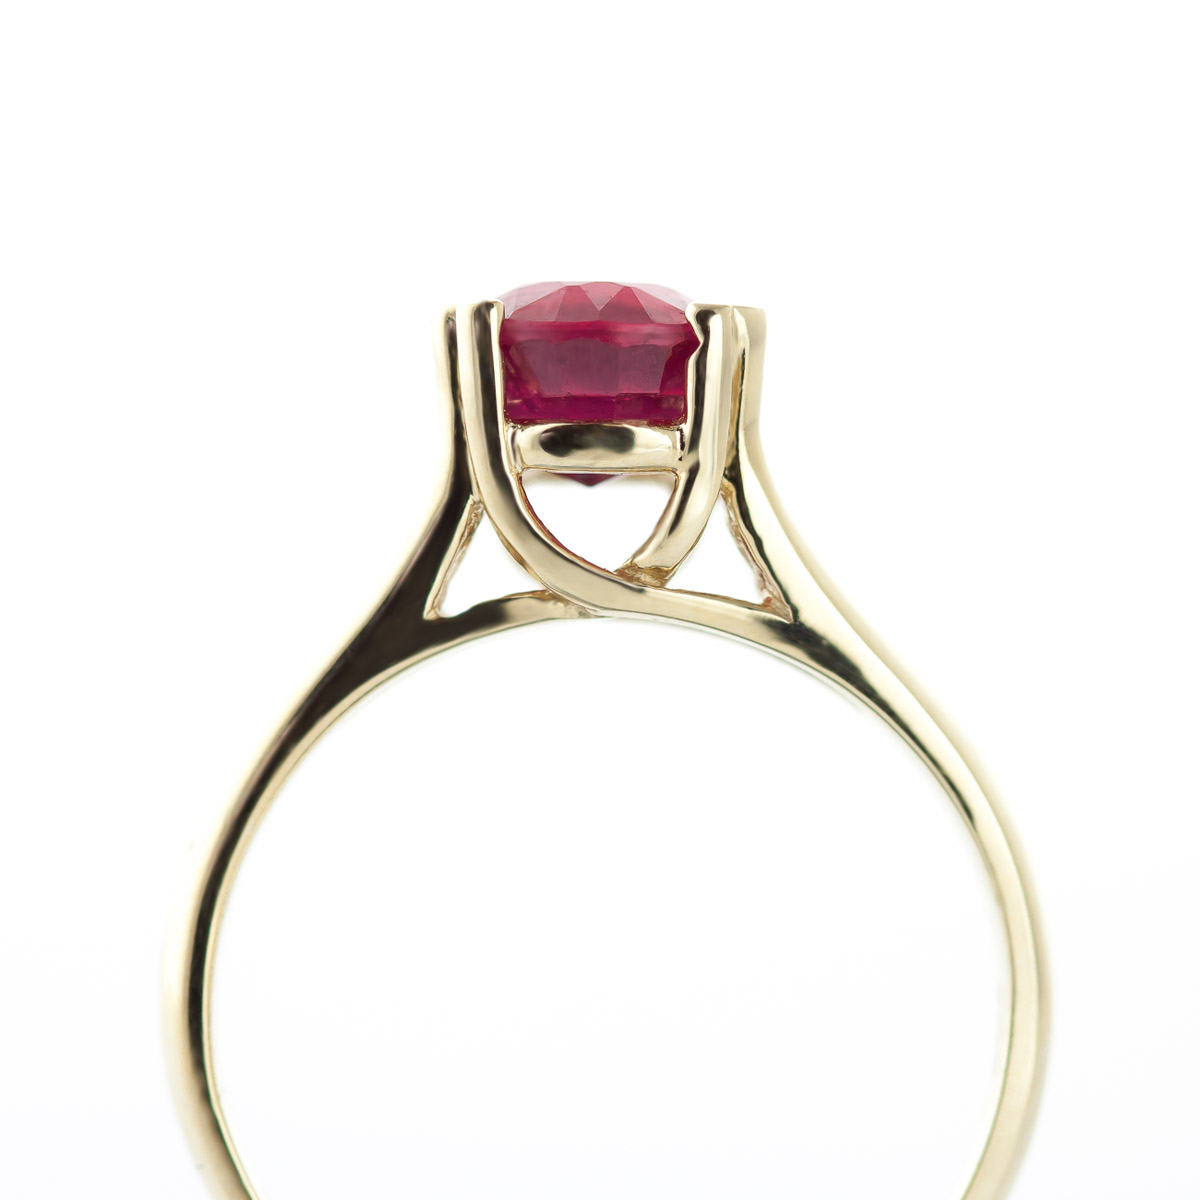 Round Brilliant Cut Ruby Solitaire Ring 1.35ct in 14K Gold